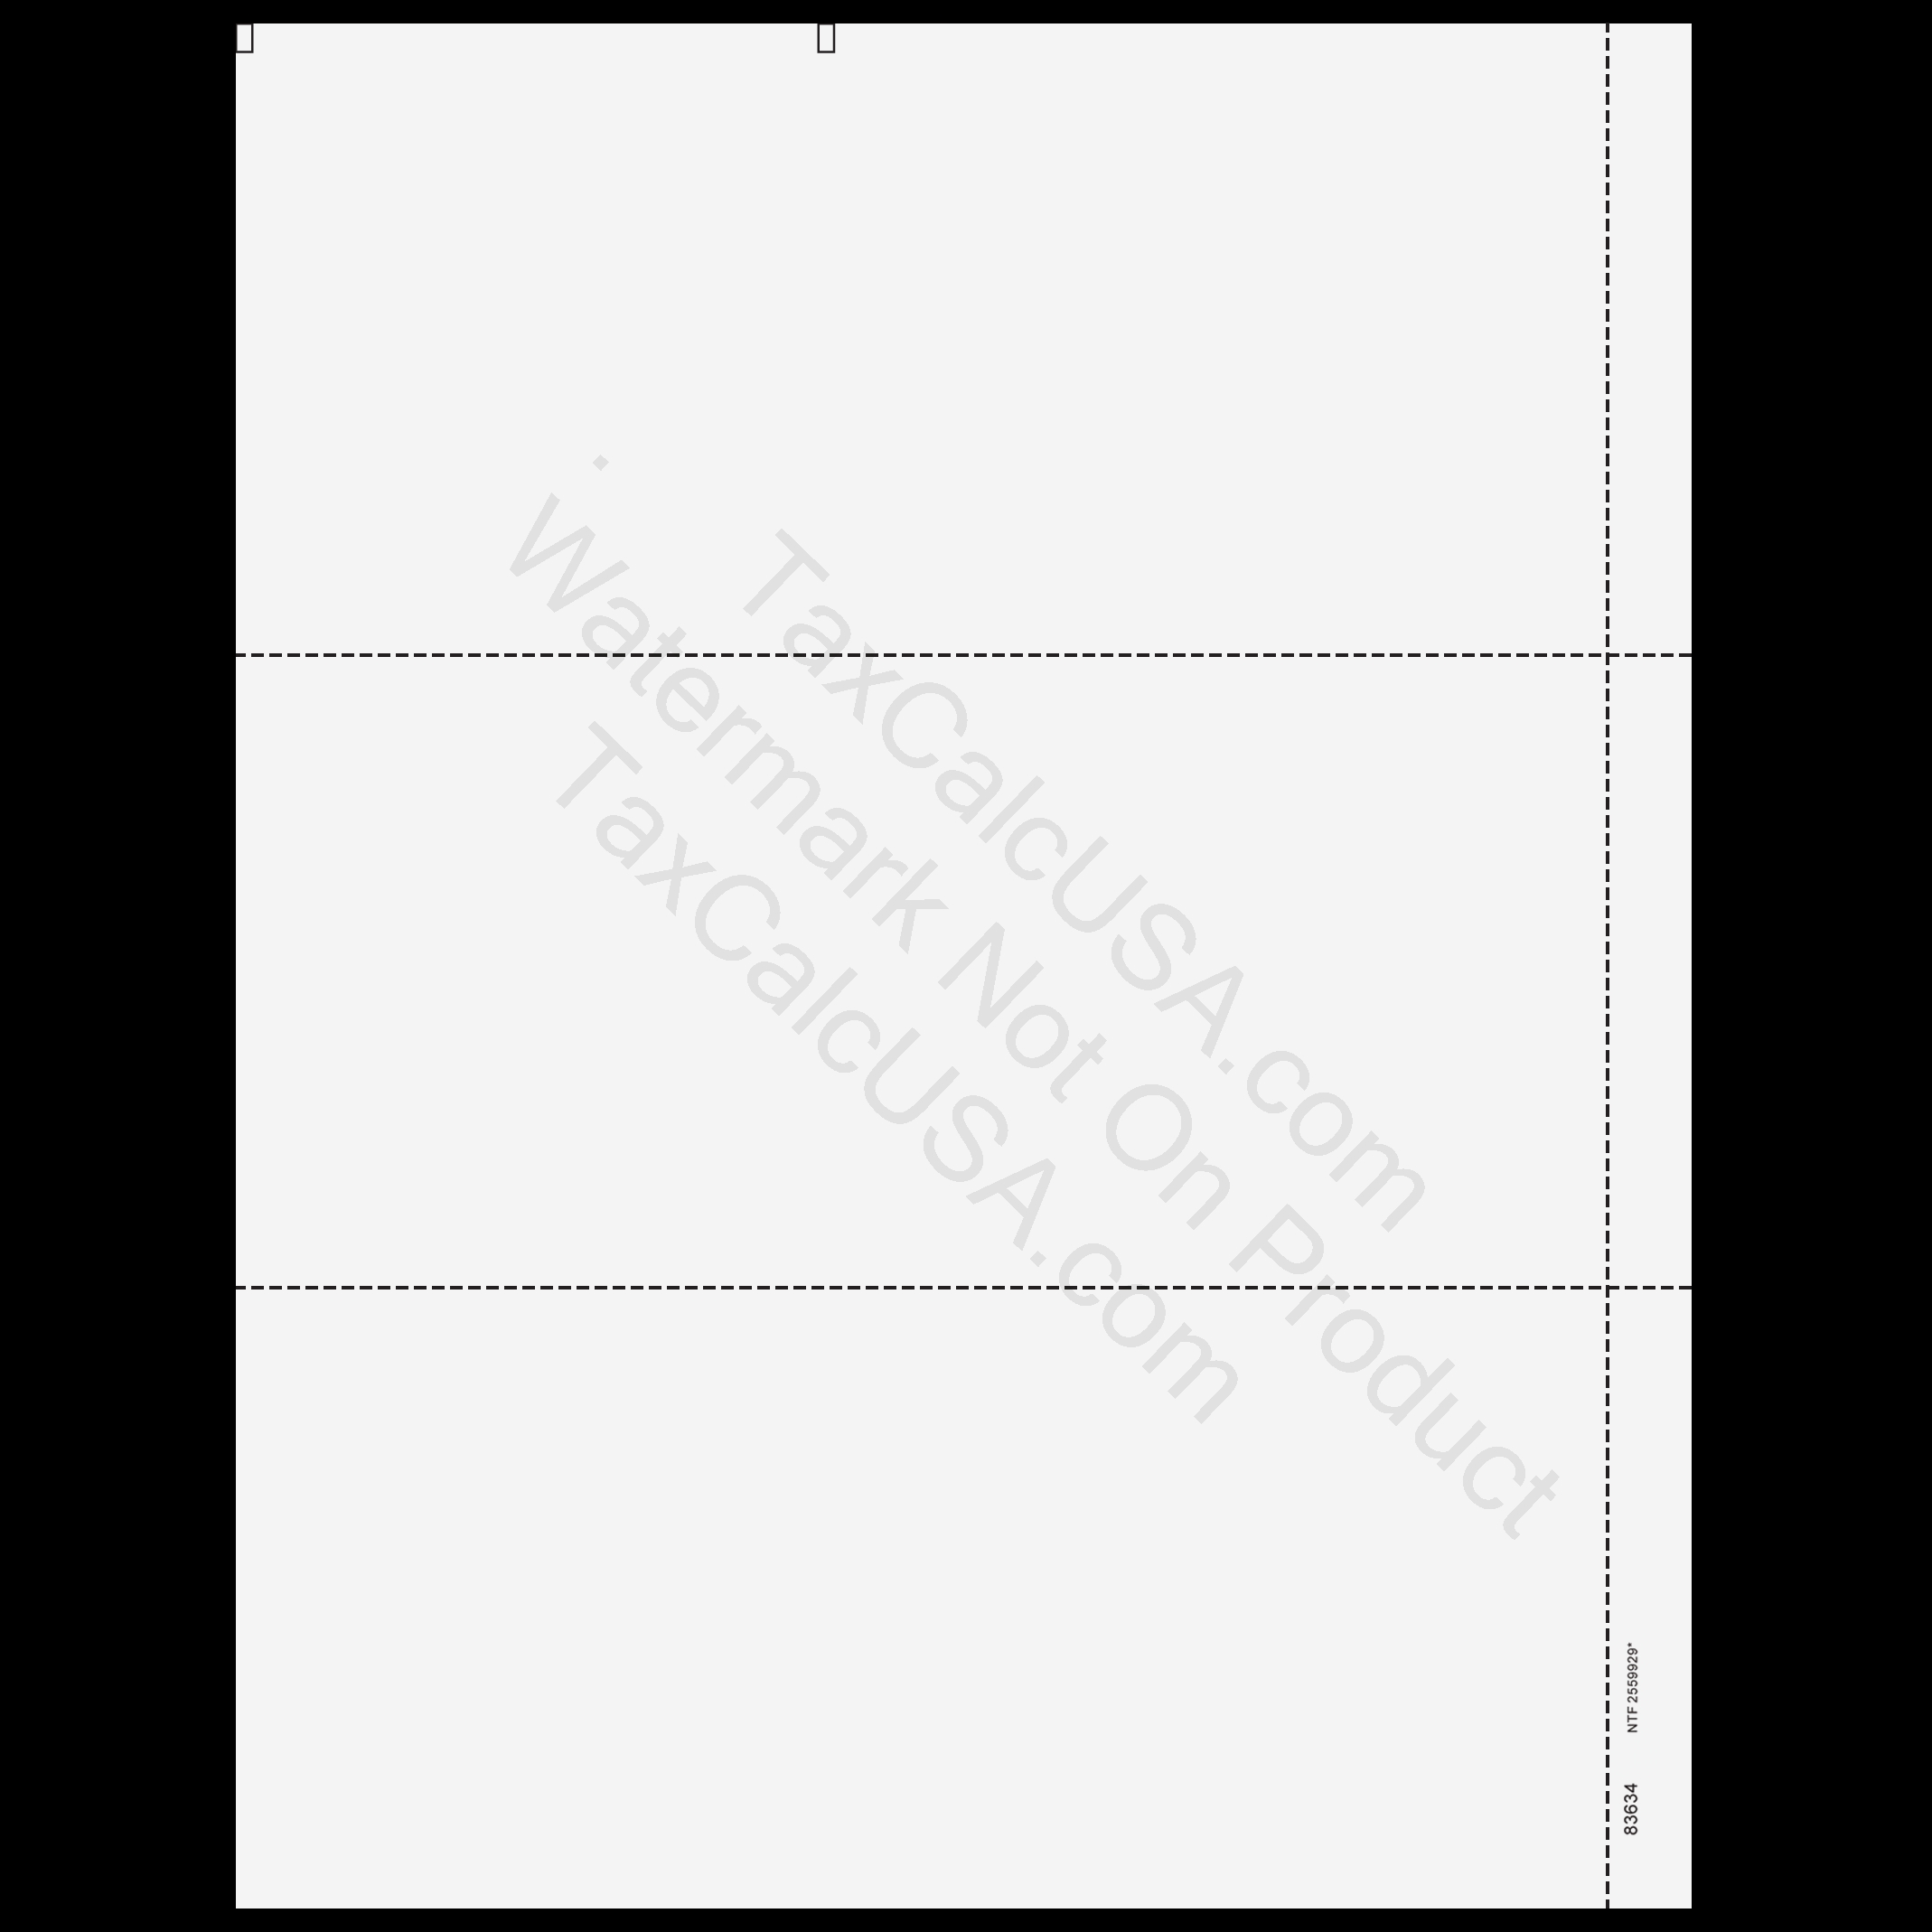 quickbooks supplies taxcalcusa perforated paper for invoice to use with quickbooks